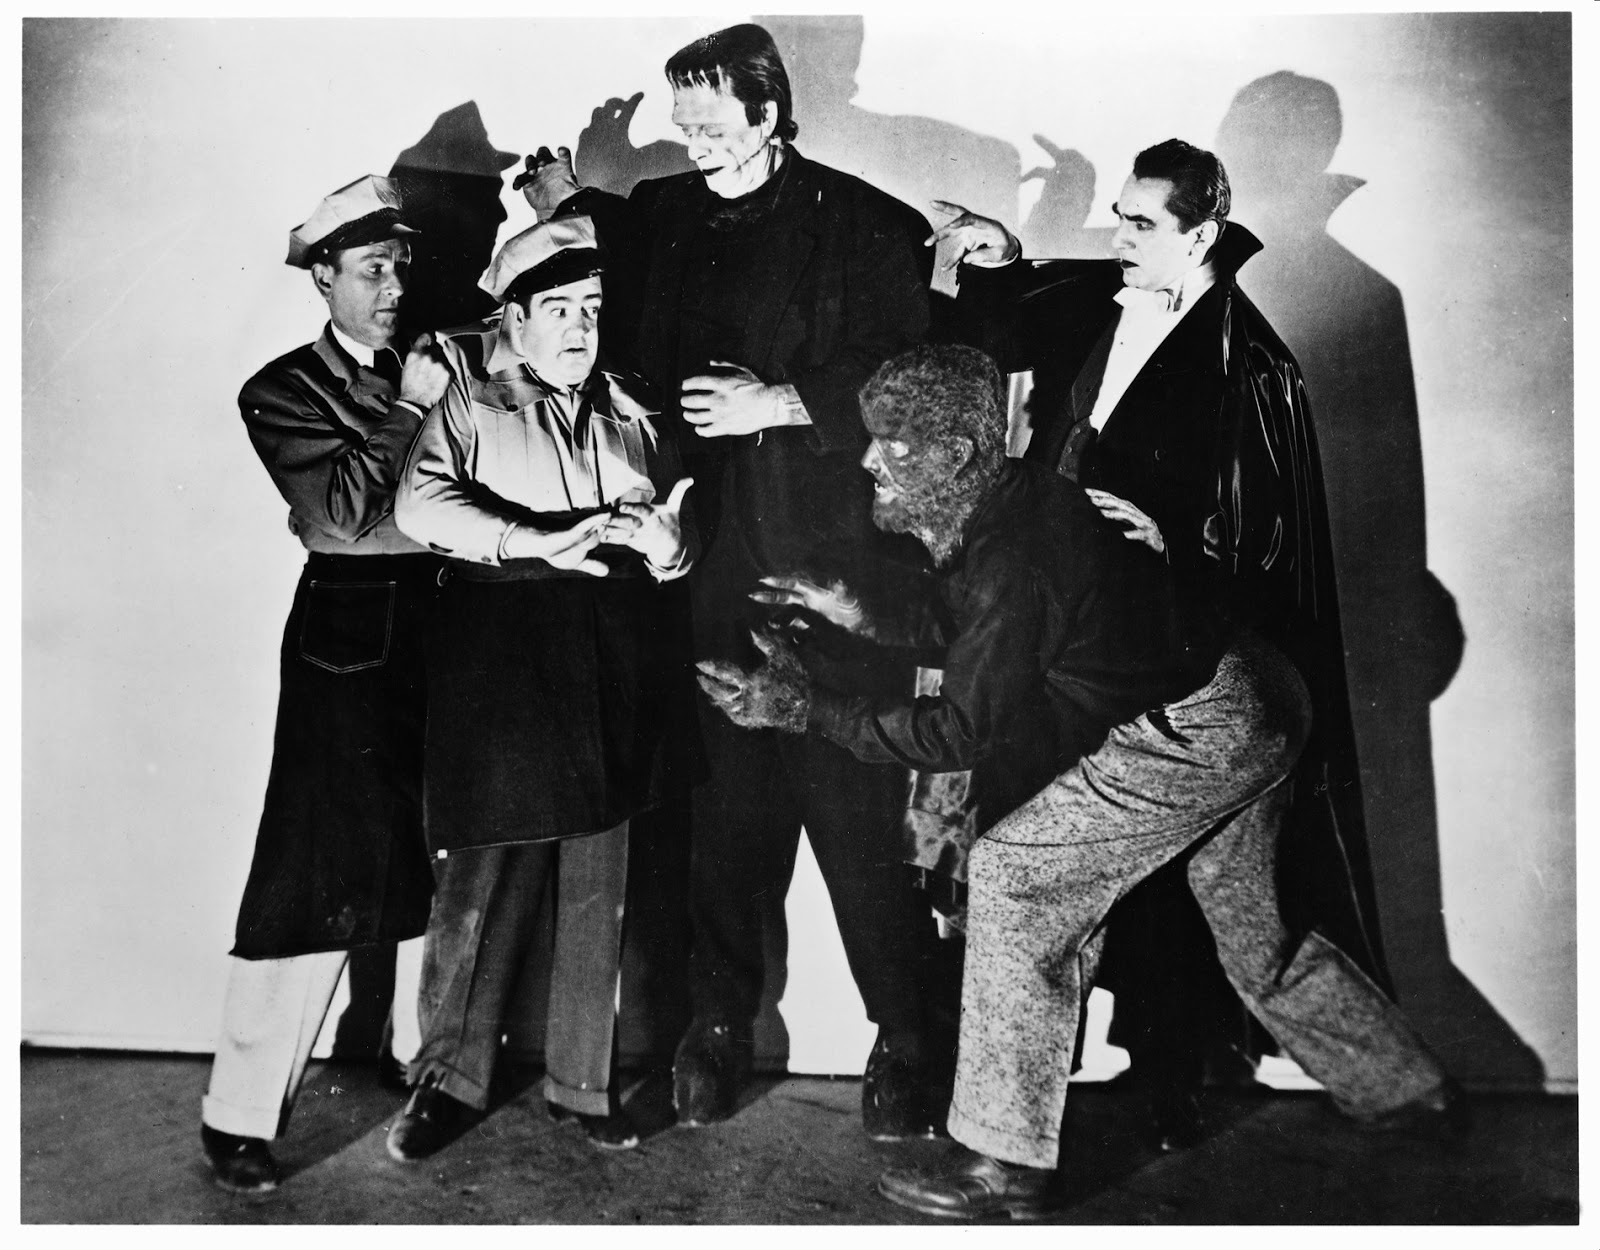 (l to r) Bud Abbott and Lou Costello meets the monsters - The Frankenstein Monster (Glenn Strange), Larry Talbot, The Wolf Man (Lon Chaney Jr) and Count Dracula (Bela Lugosi) in Abbott and Costello Meet Frankenstein (1948)